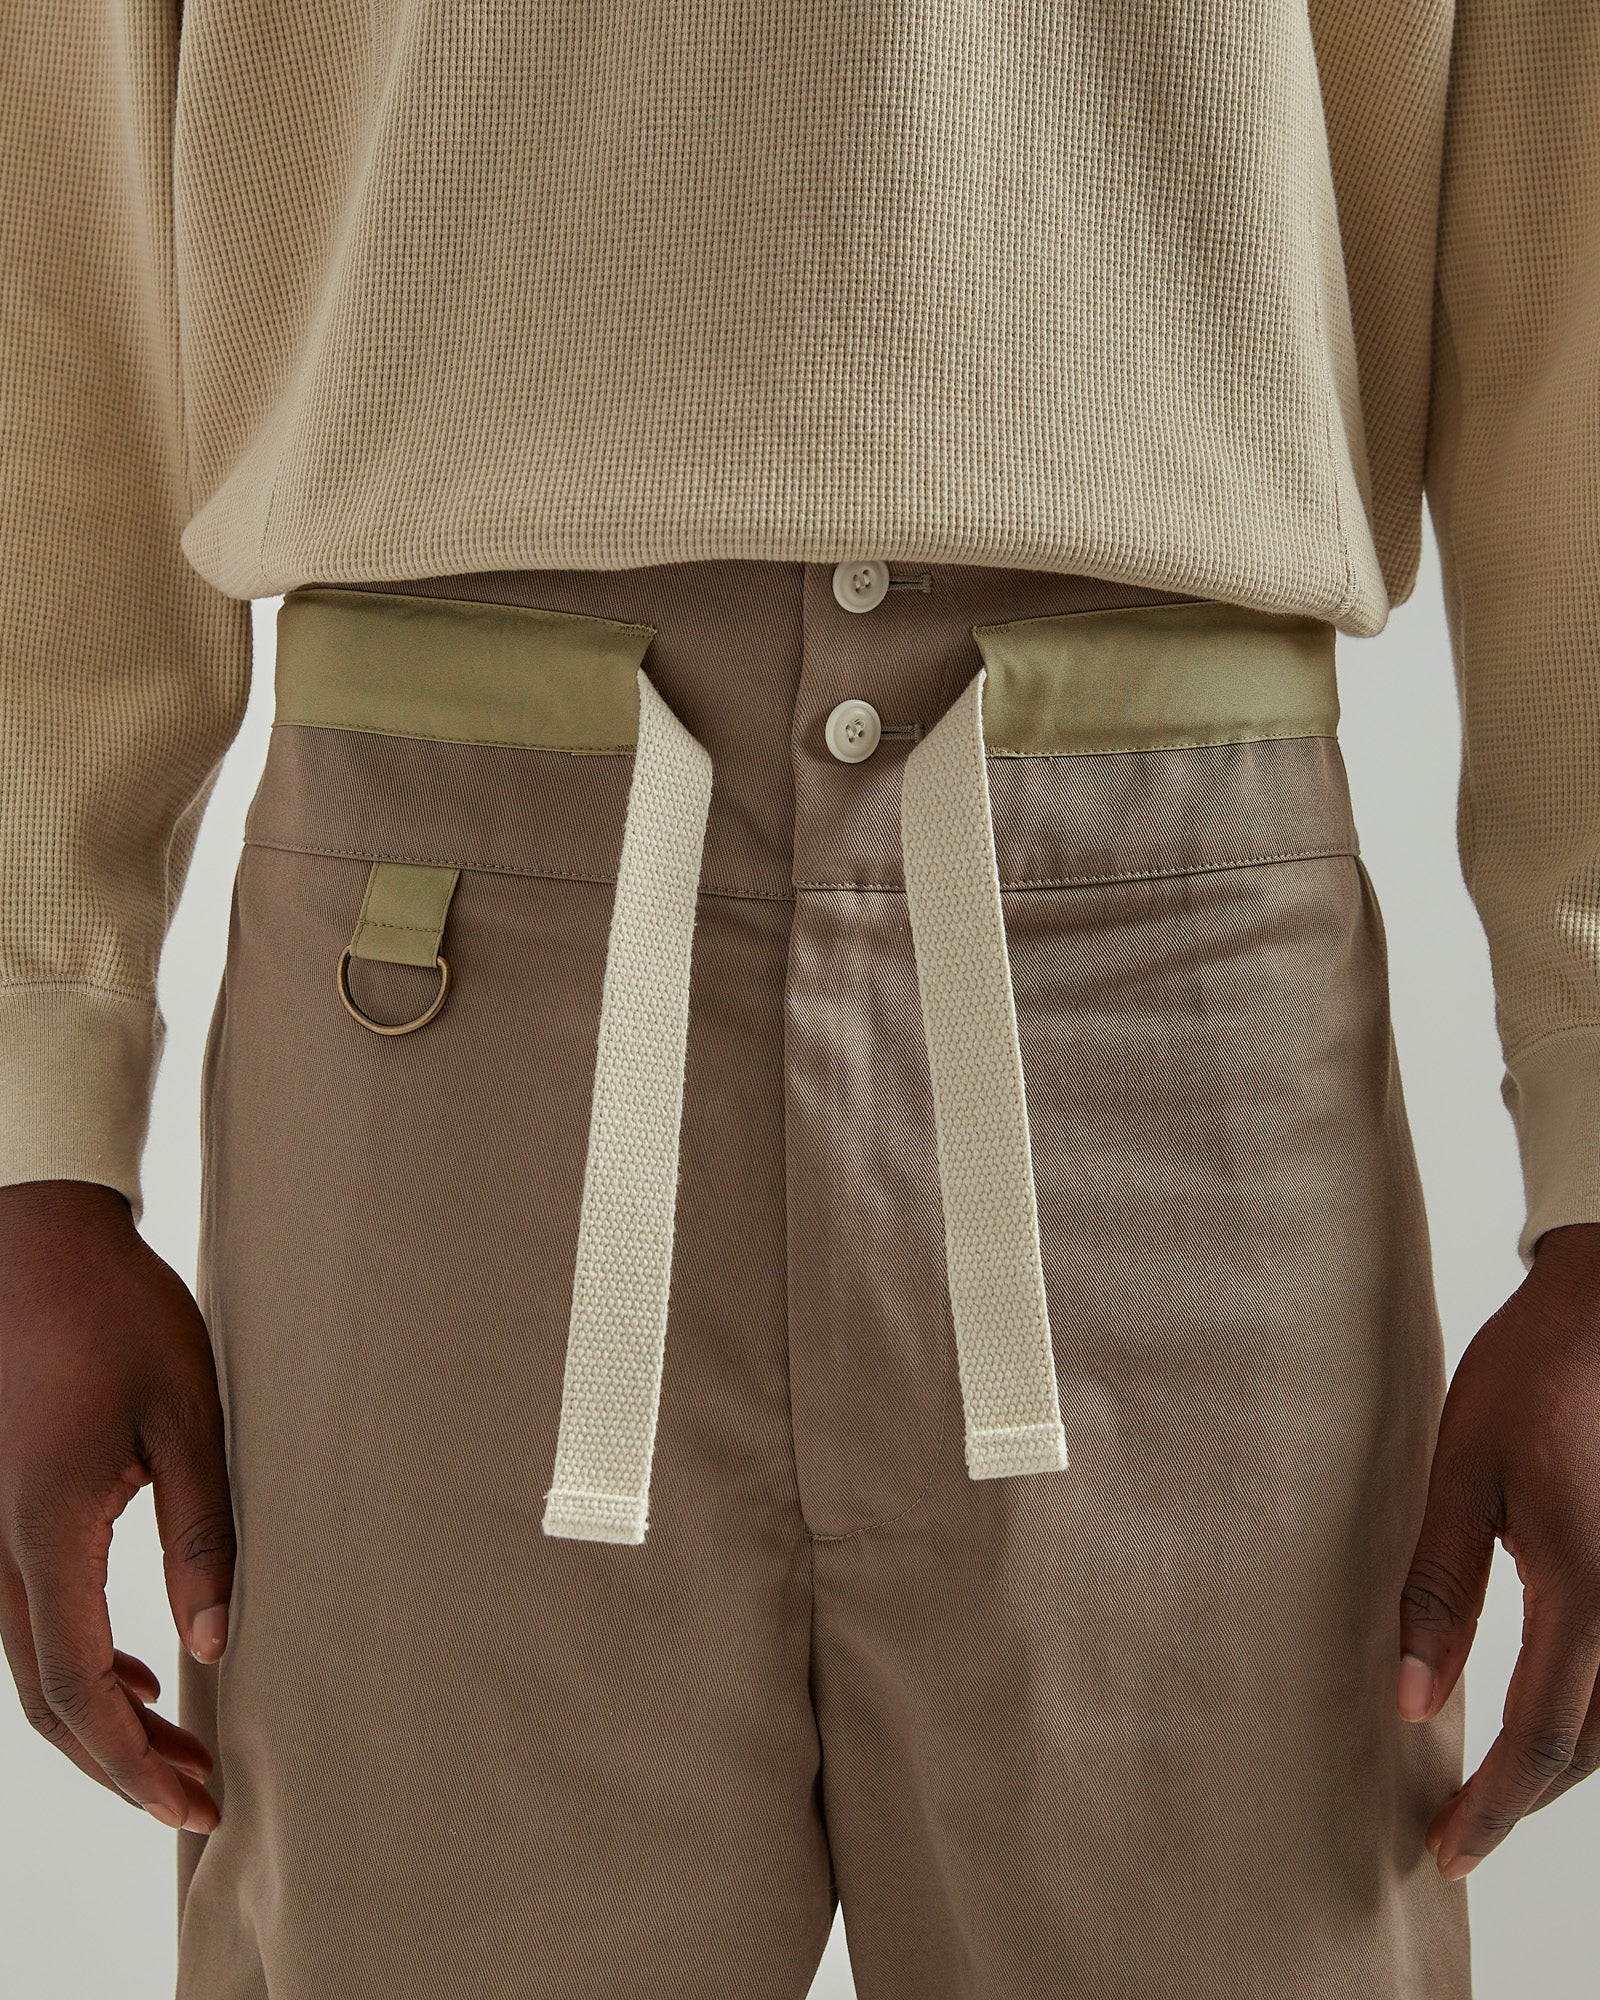 Pullcord Shorts in Khaki